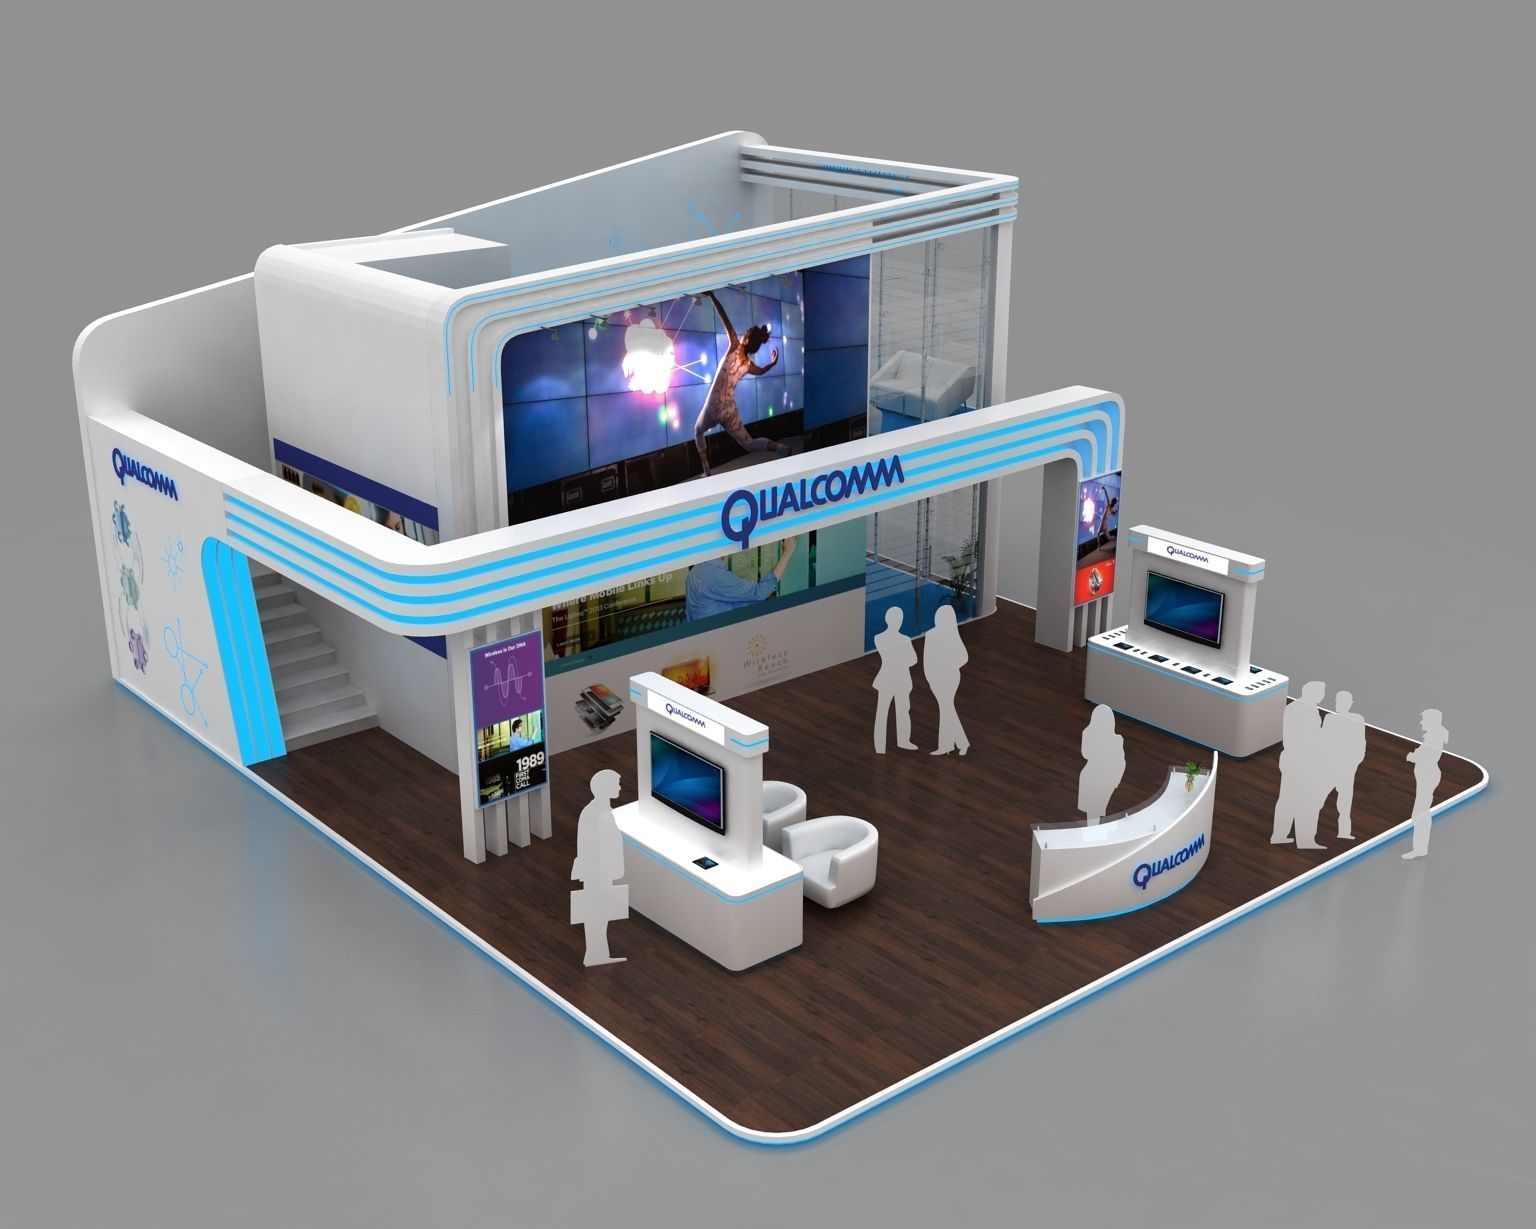 3d Exhibition Booth Design : Meter exhibition booth design d model max bip